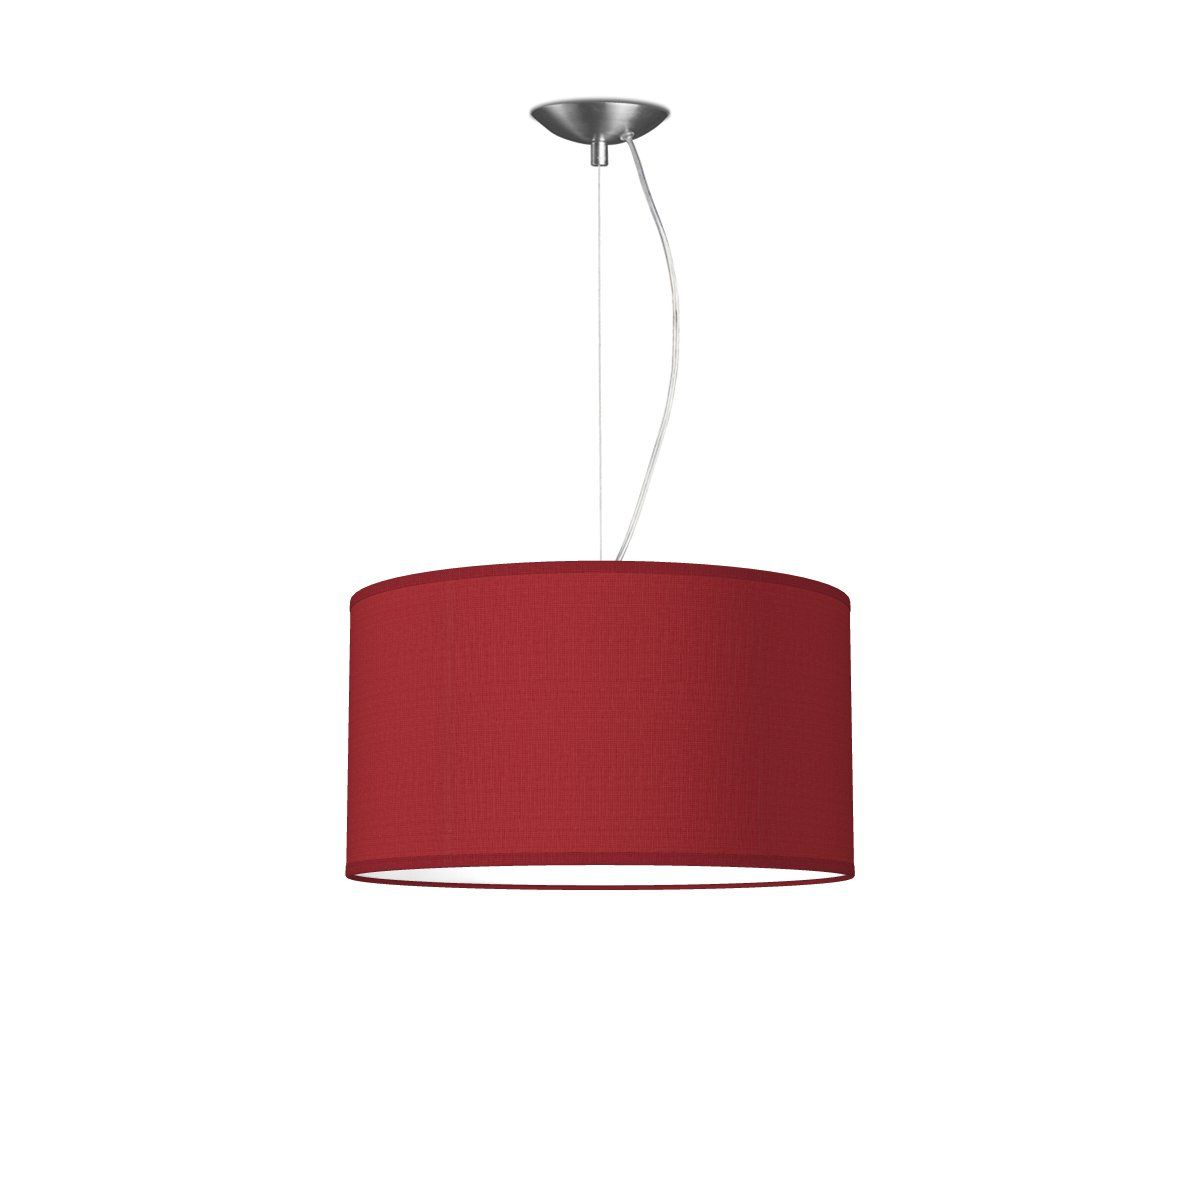 HOME SWEET HOME hanglamp basic deluxe bling Ø 40 cm - Pompeian red